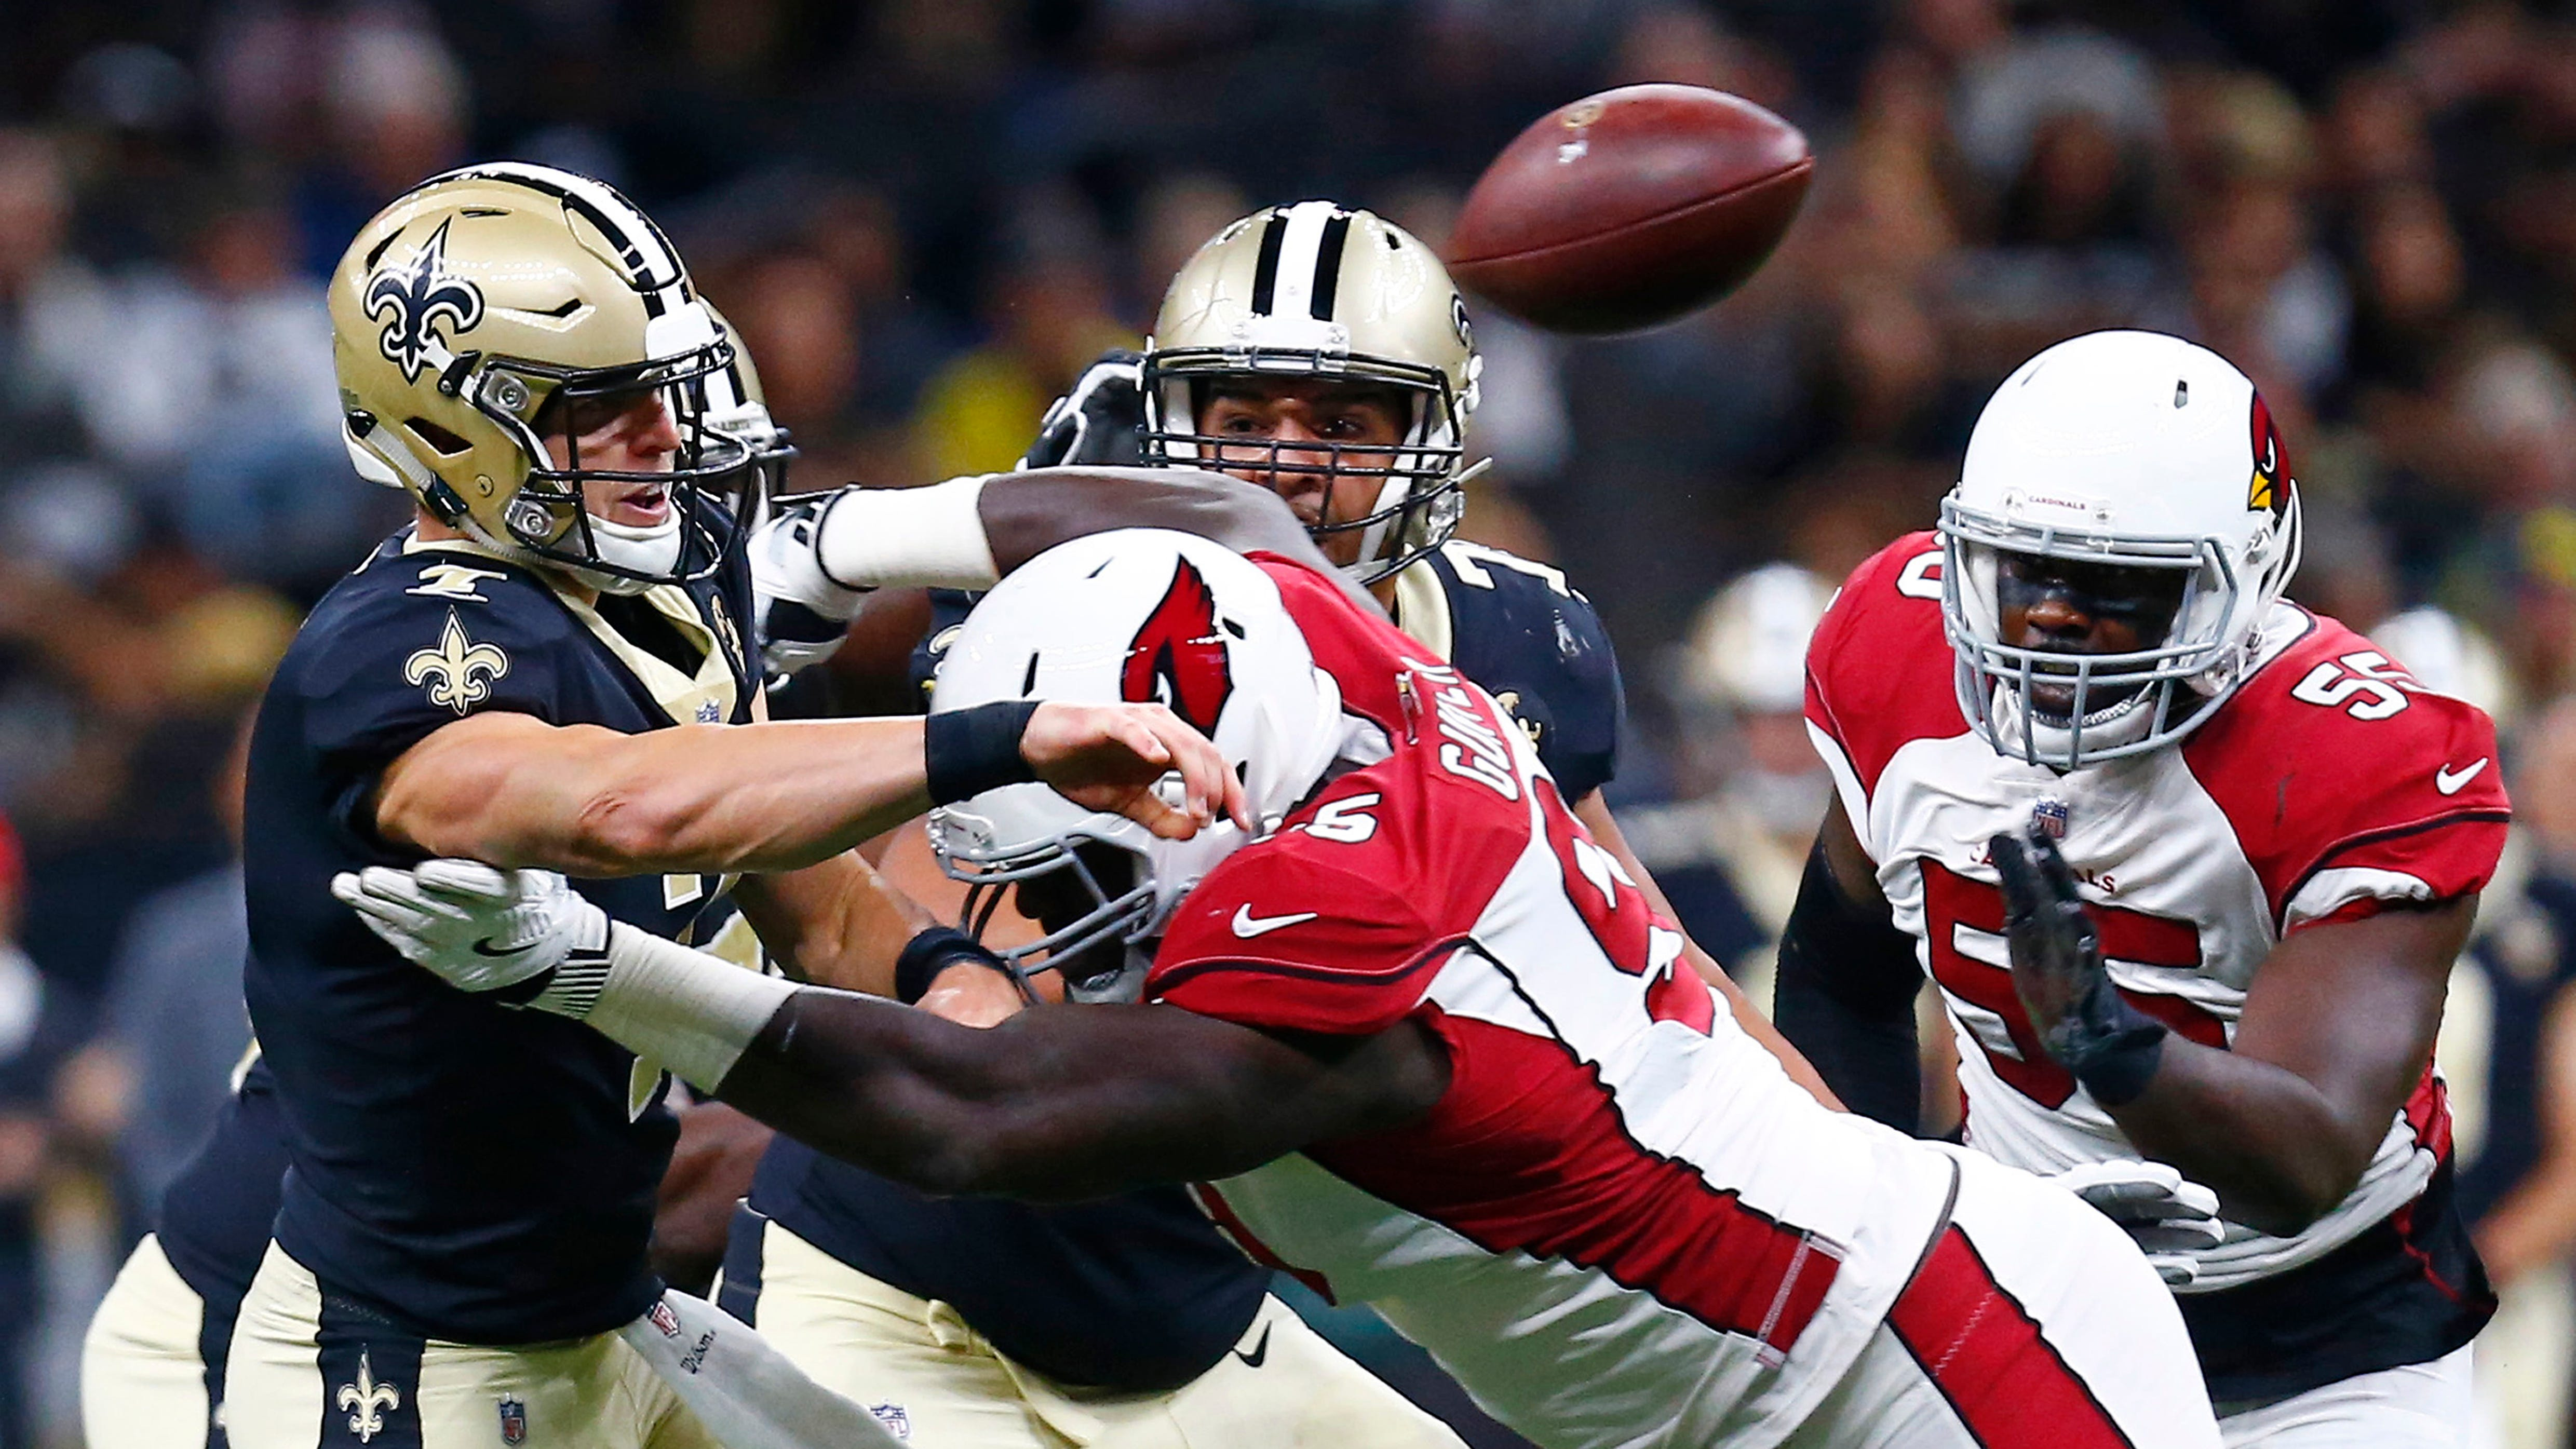 The Saints lost to Arizona, 20-15, in their home preseason opener on Friday night